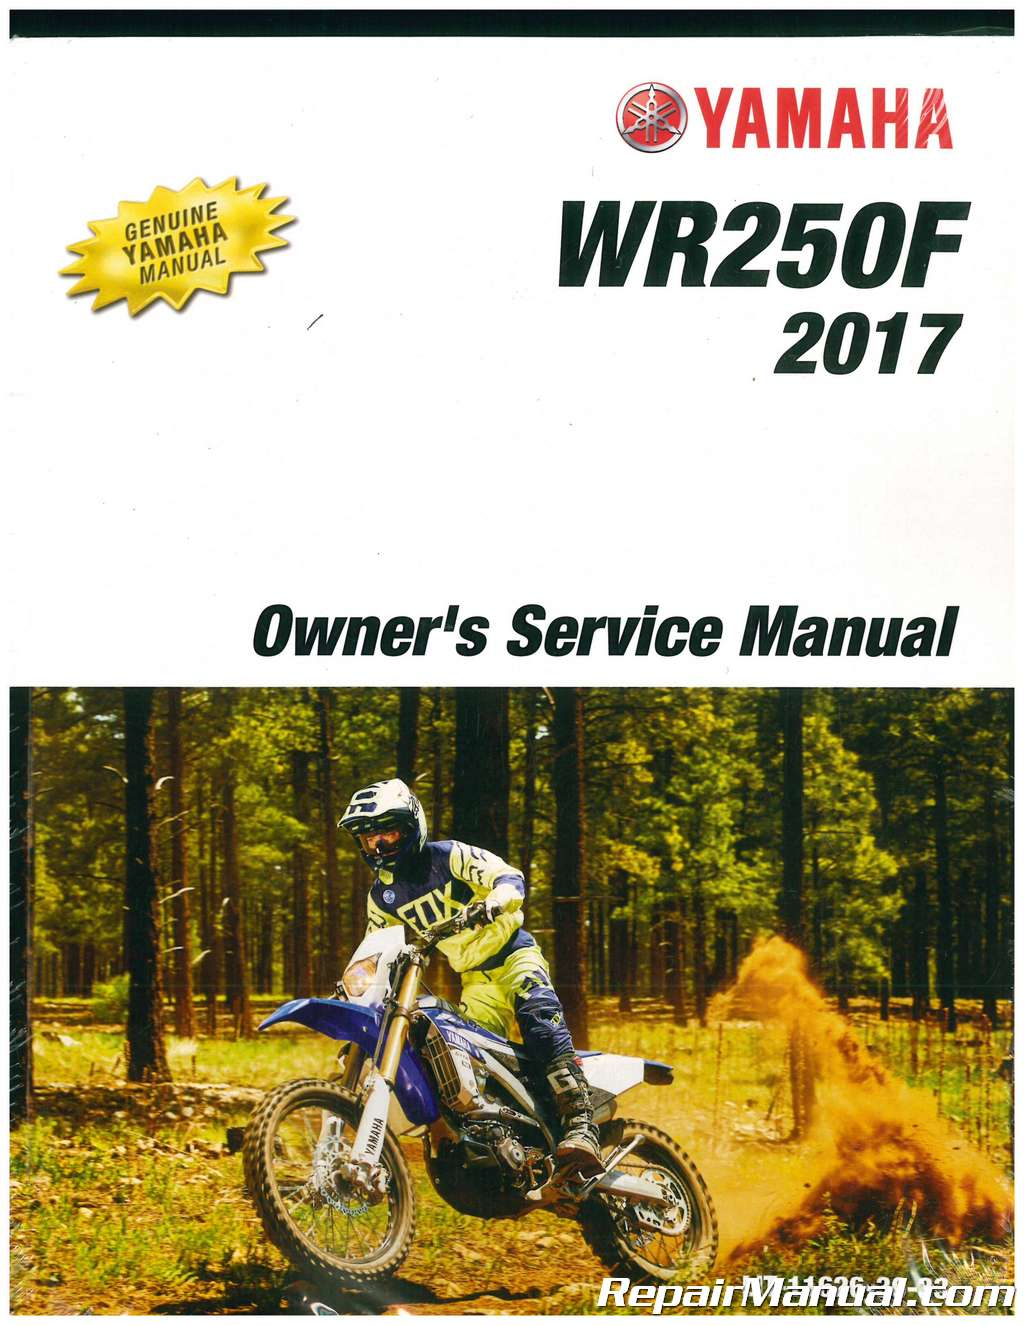 Yamaha wr250f manual download manuals & technical.